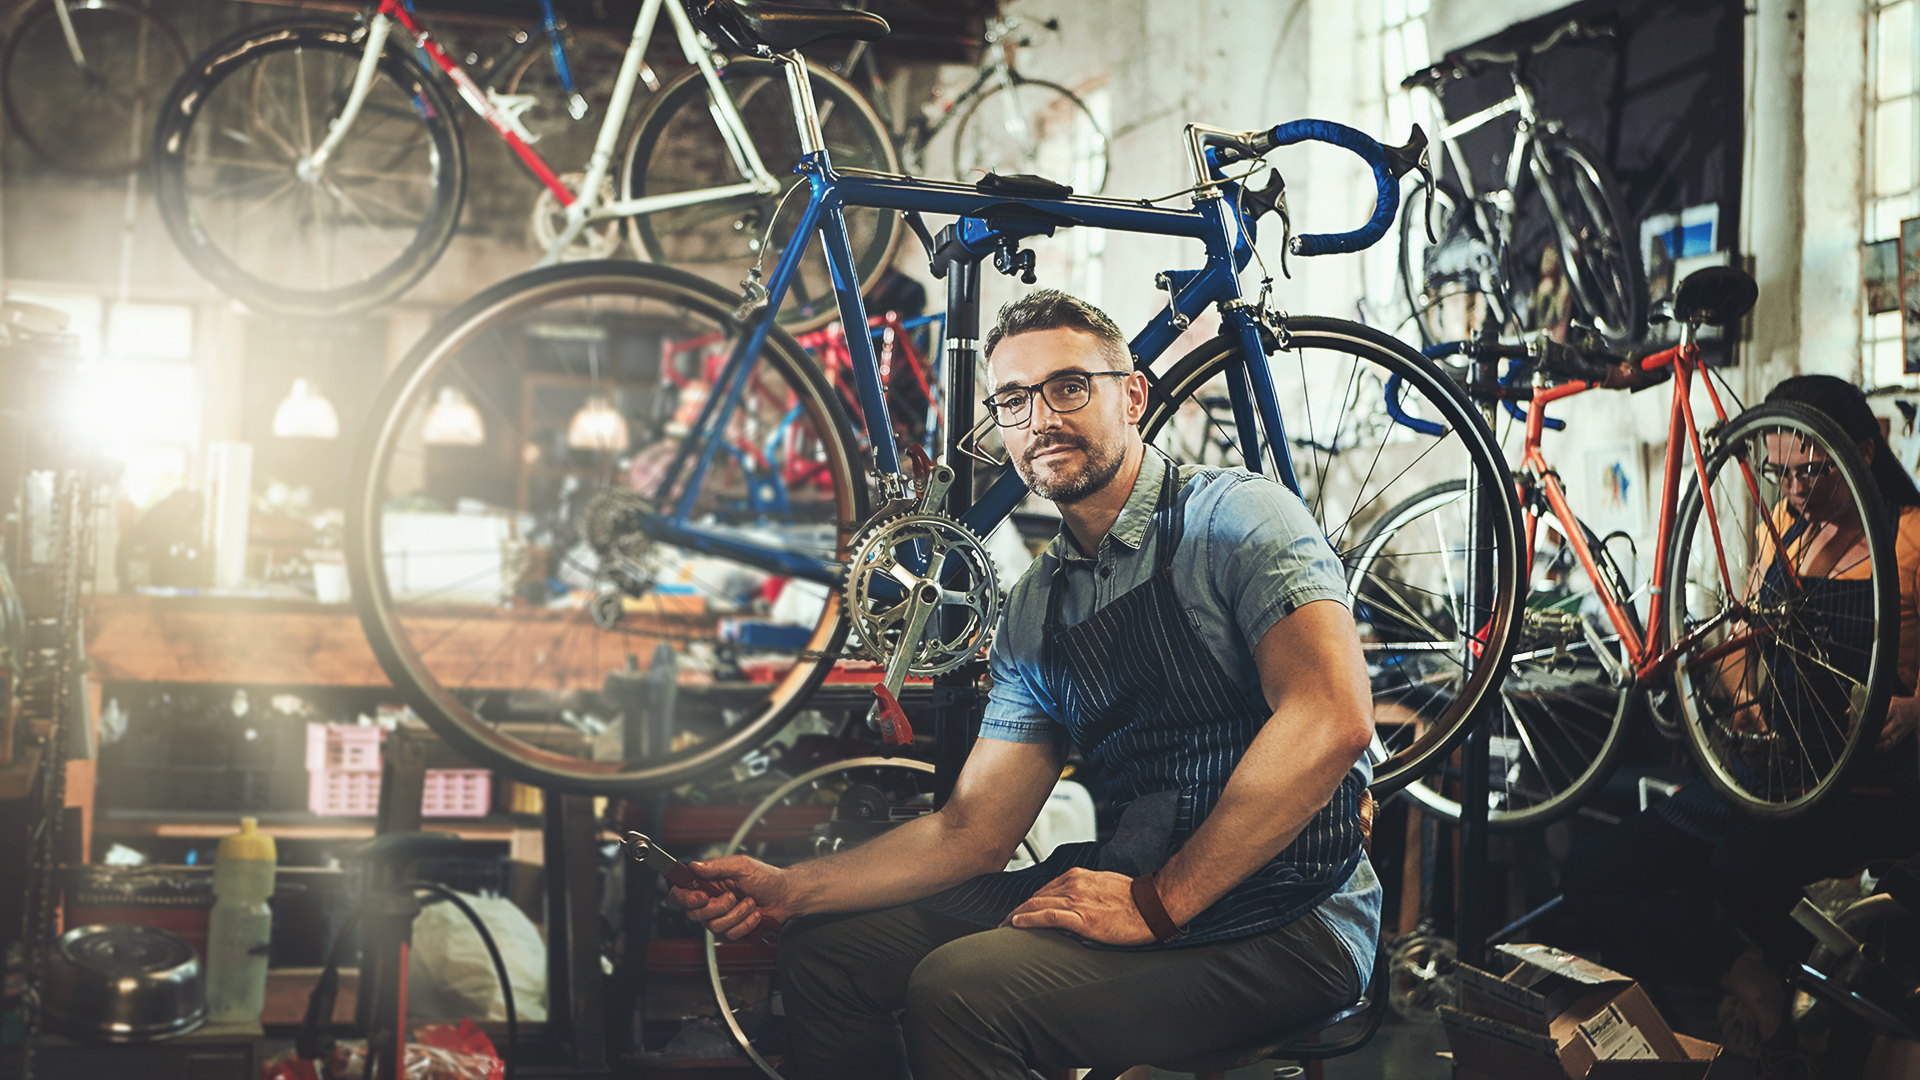 Bike shop worker